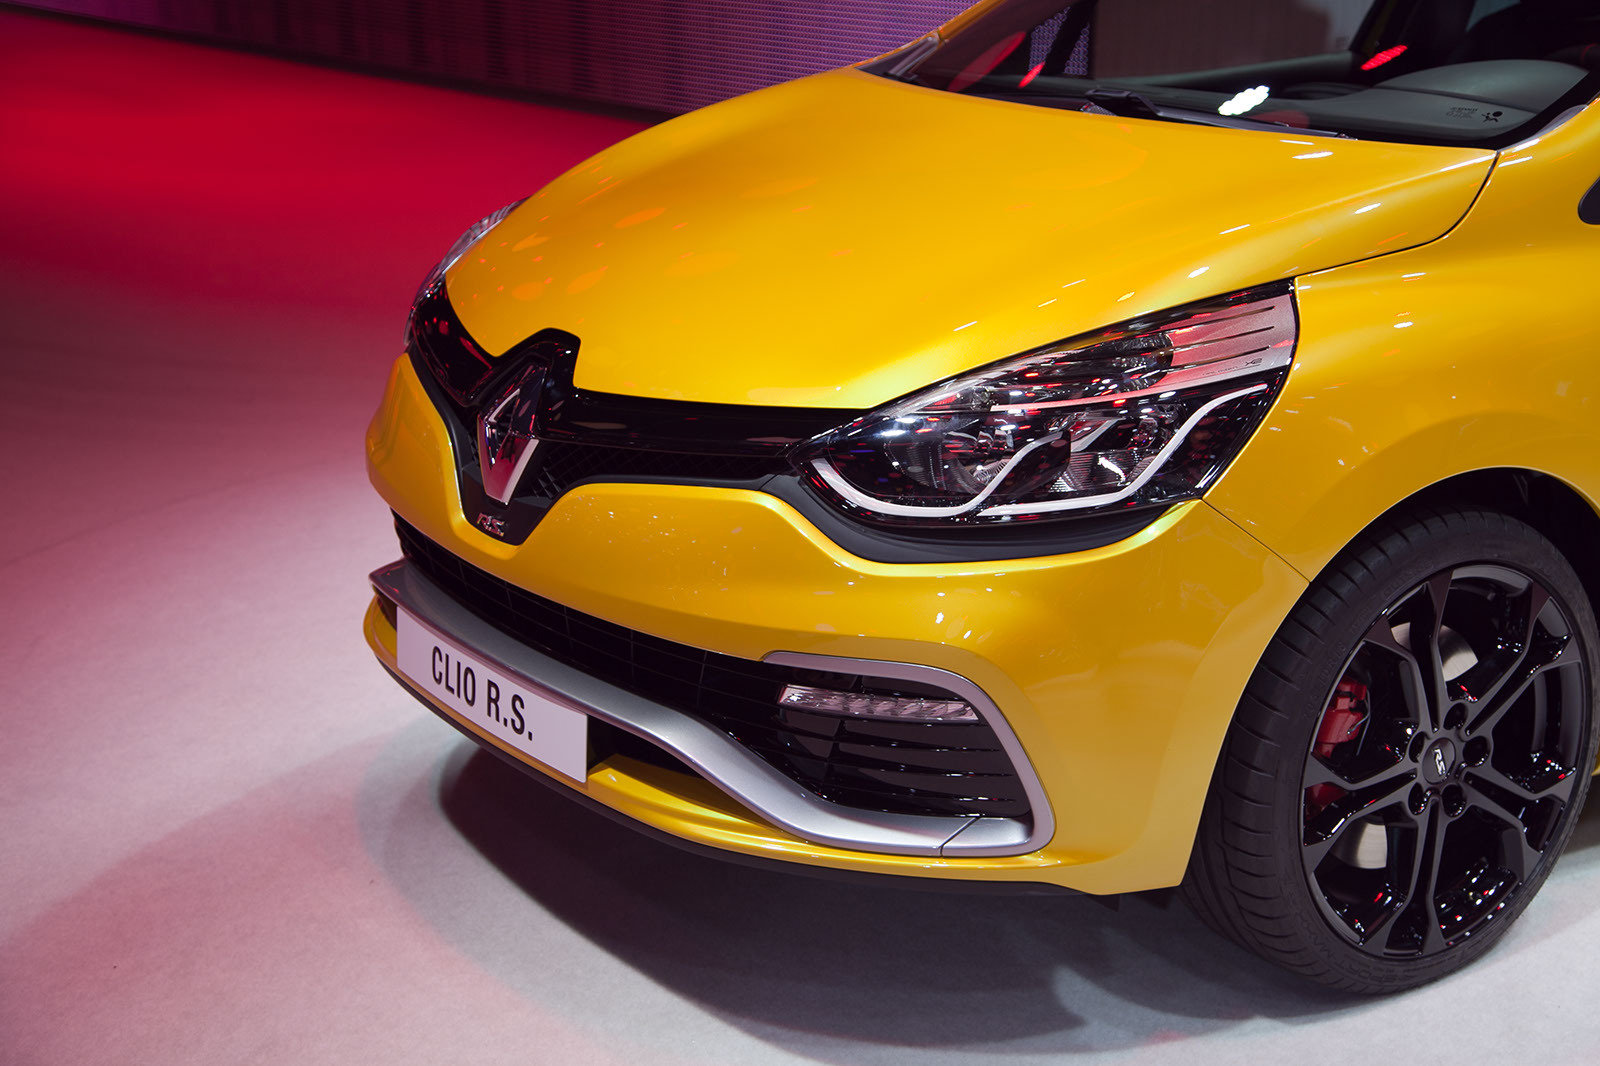 2013 renault clio rs 200 turbo picture 475990 car review top speed. Black Bedroom Furniture Sets. Home Design Ideas